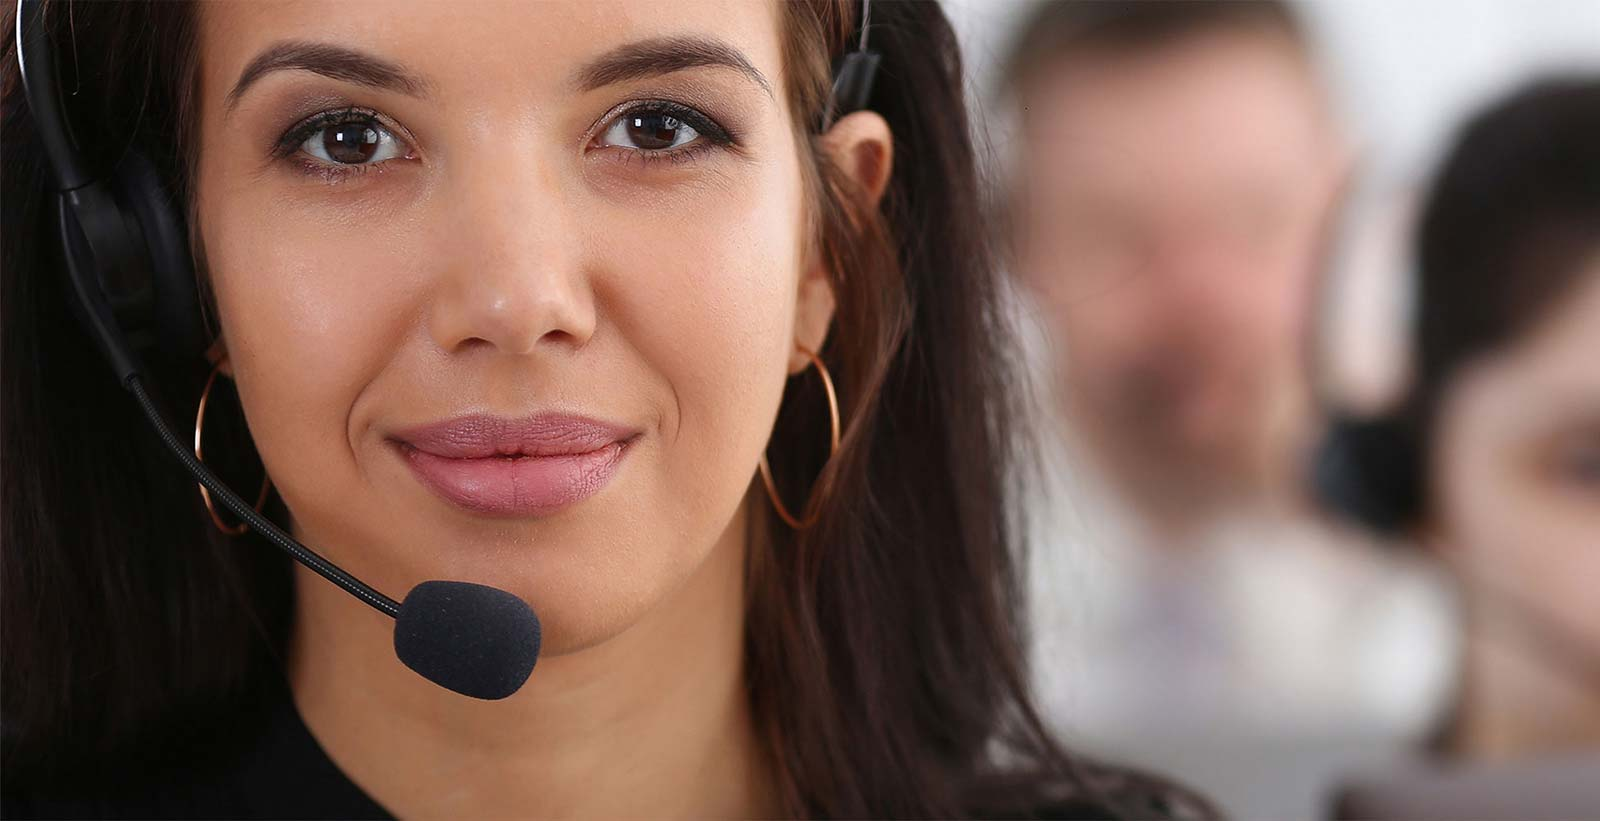 Vision voice & data 3 call centre service operators at work smiling woman at workplace